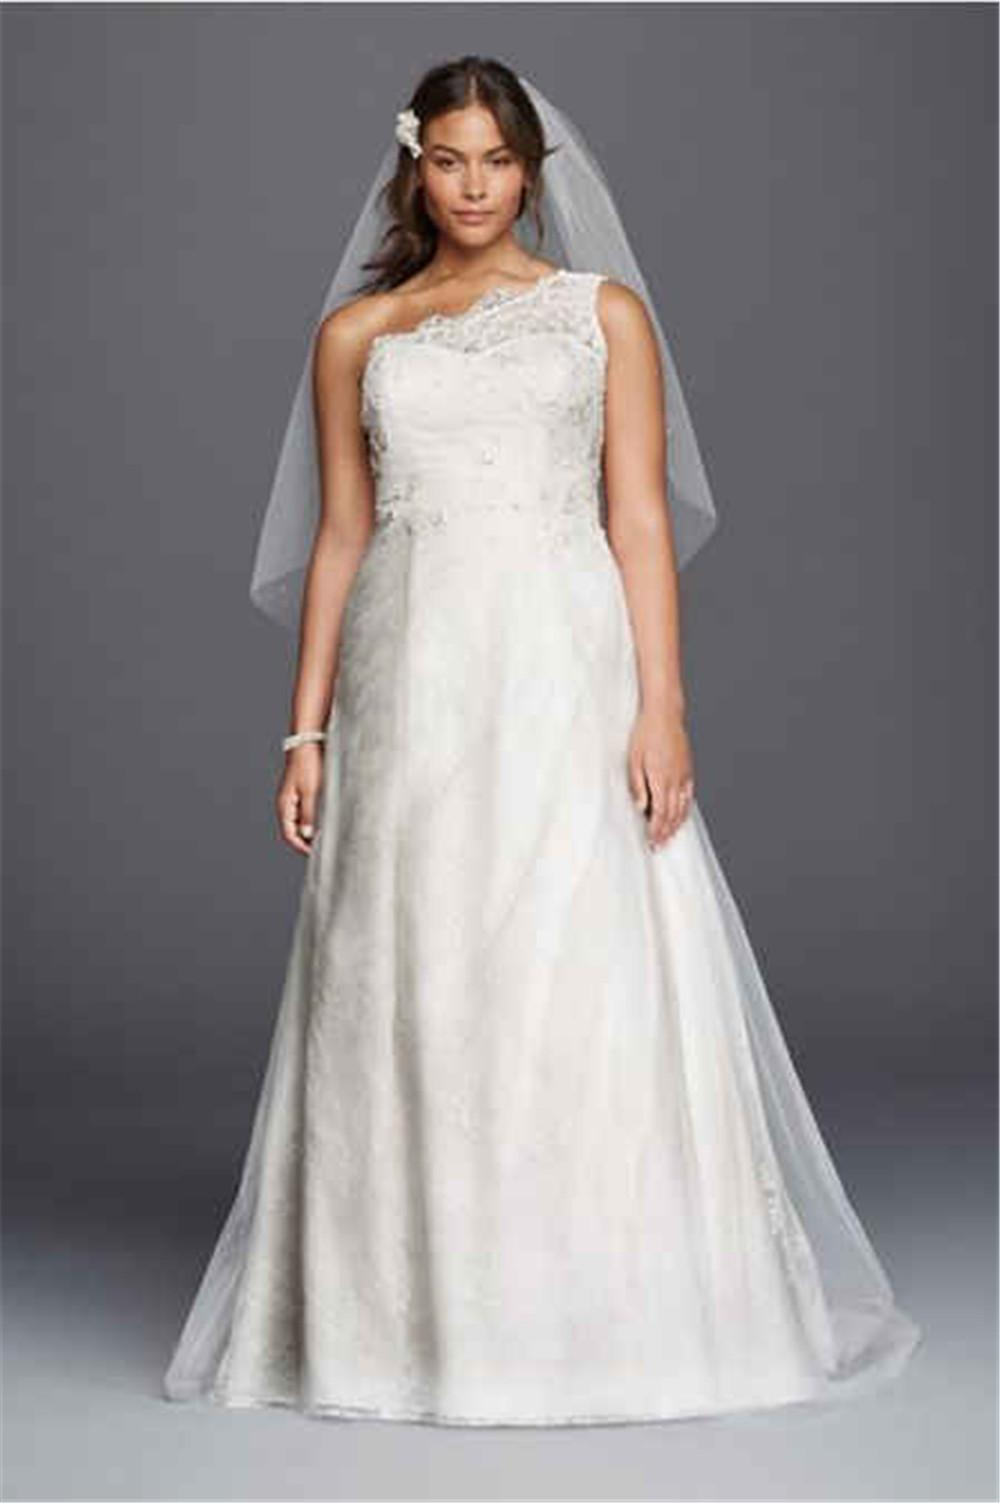 Plus Size Bridal Gowns Nyc : Discount one shoulder tulle a line plus size wedding dress